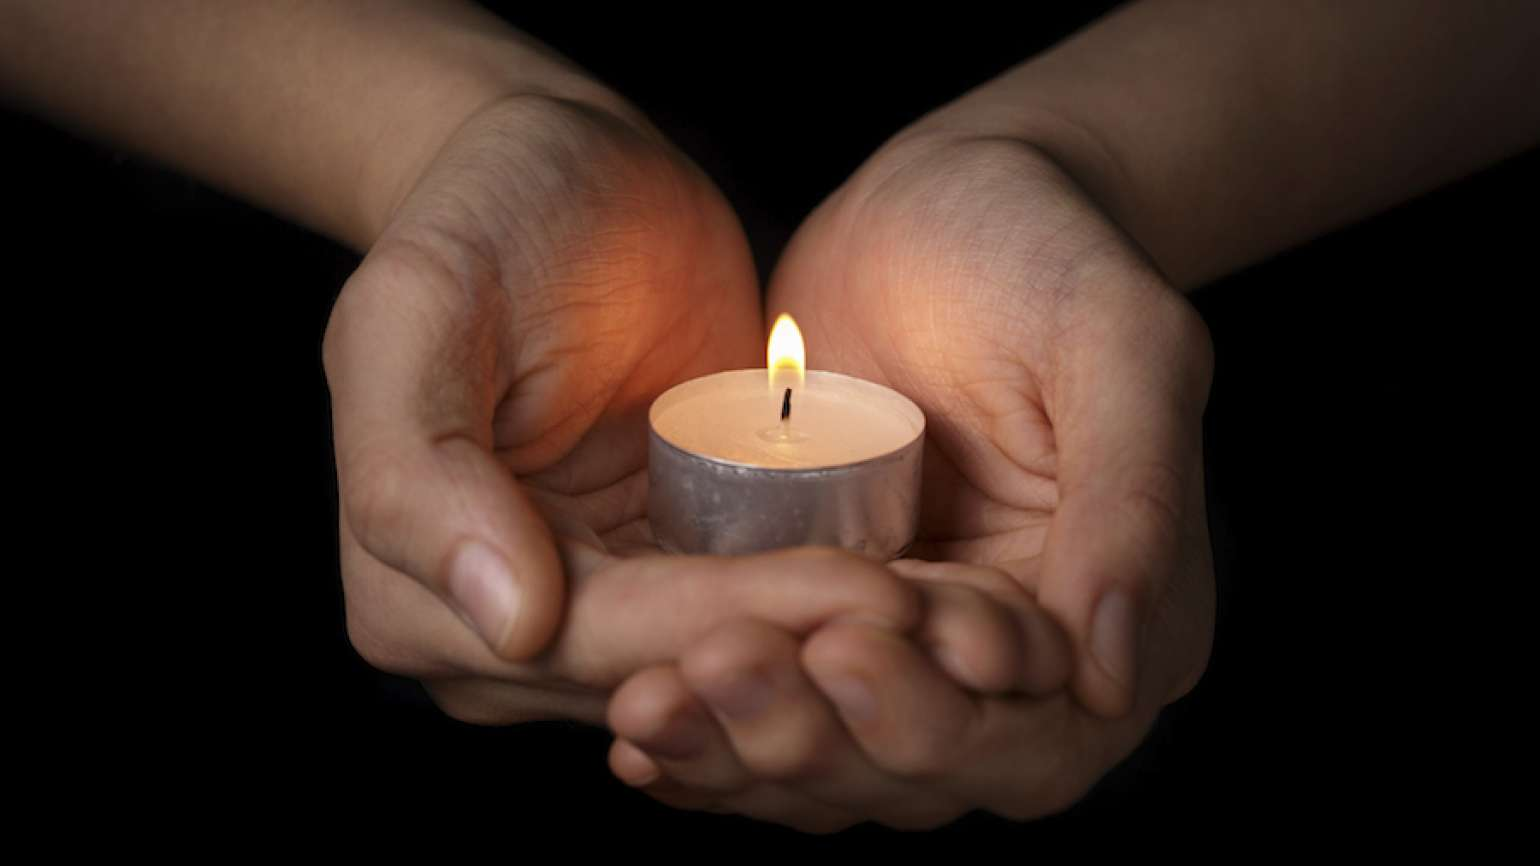 Woman's hands cupping a candle. Photo by Goo Dween123, Thinkstock.